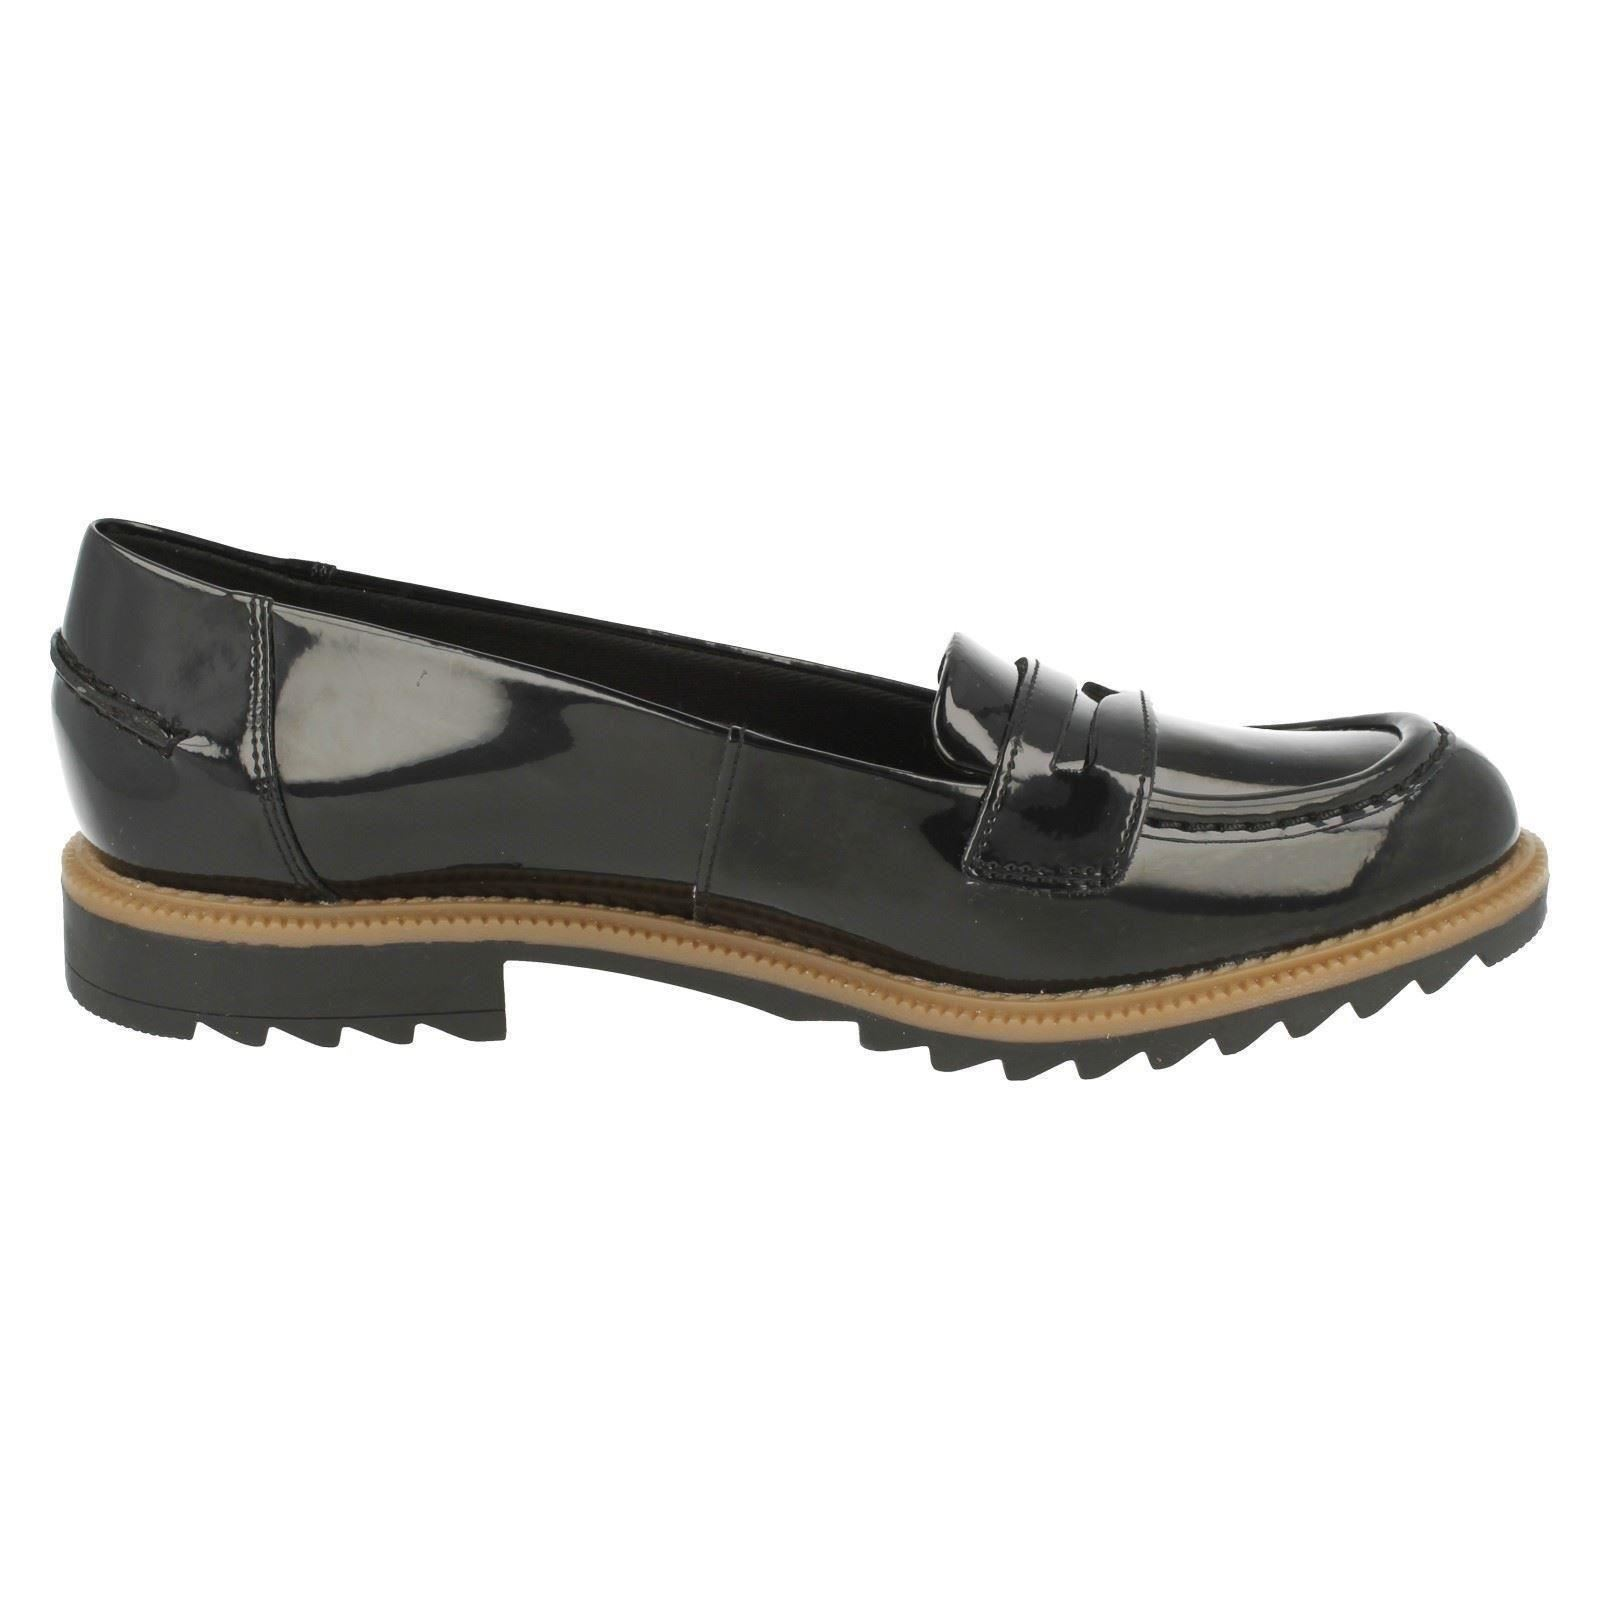 Clarks Shoes Ladies Loafers